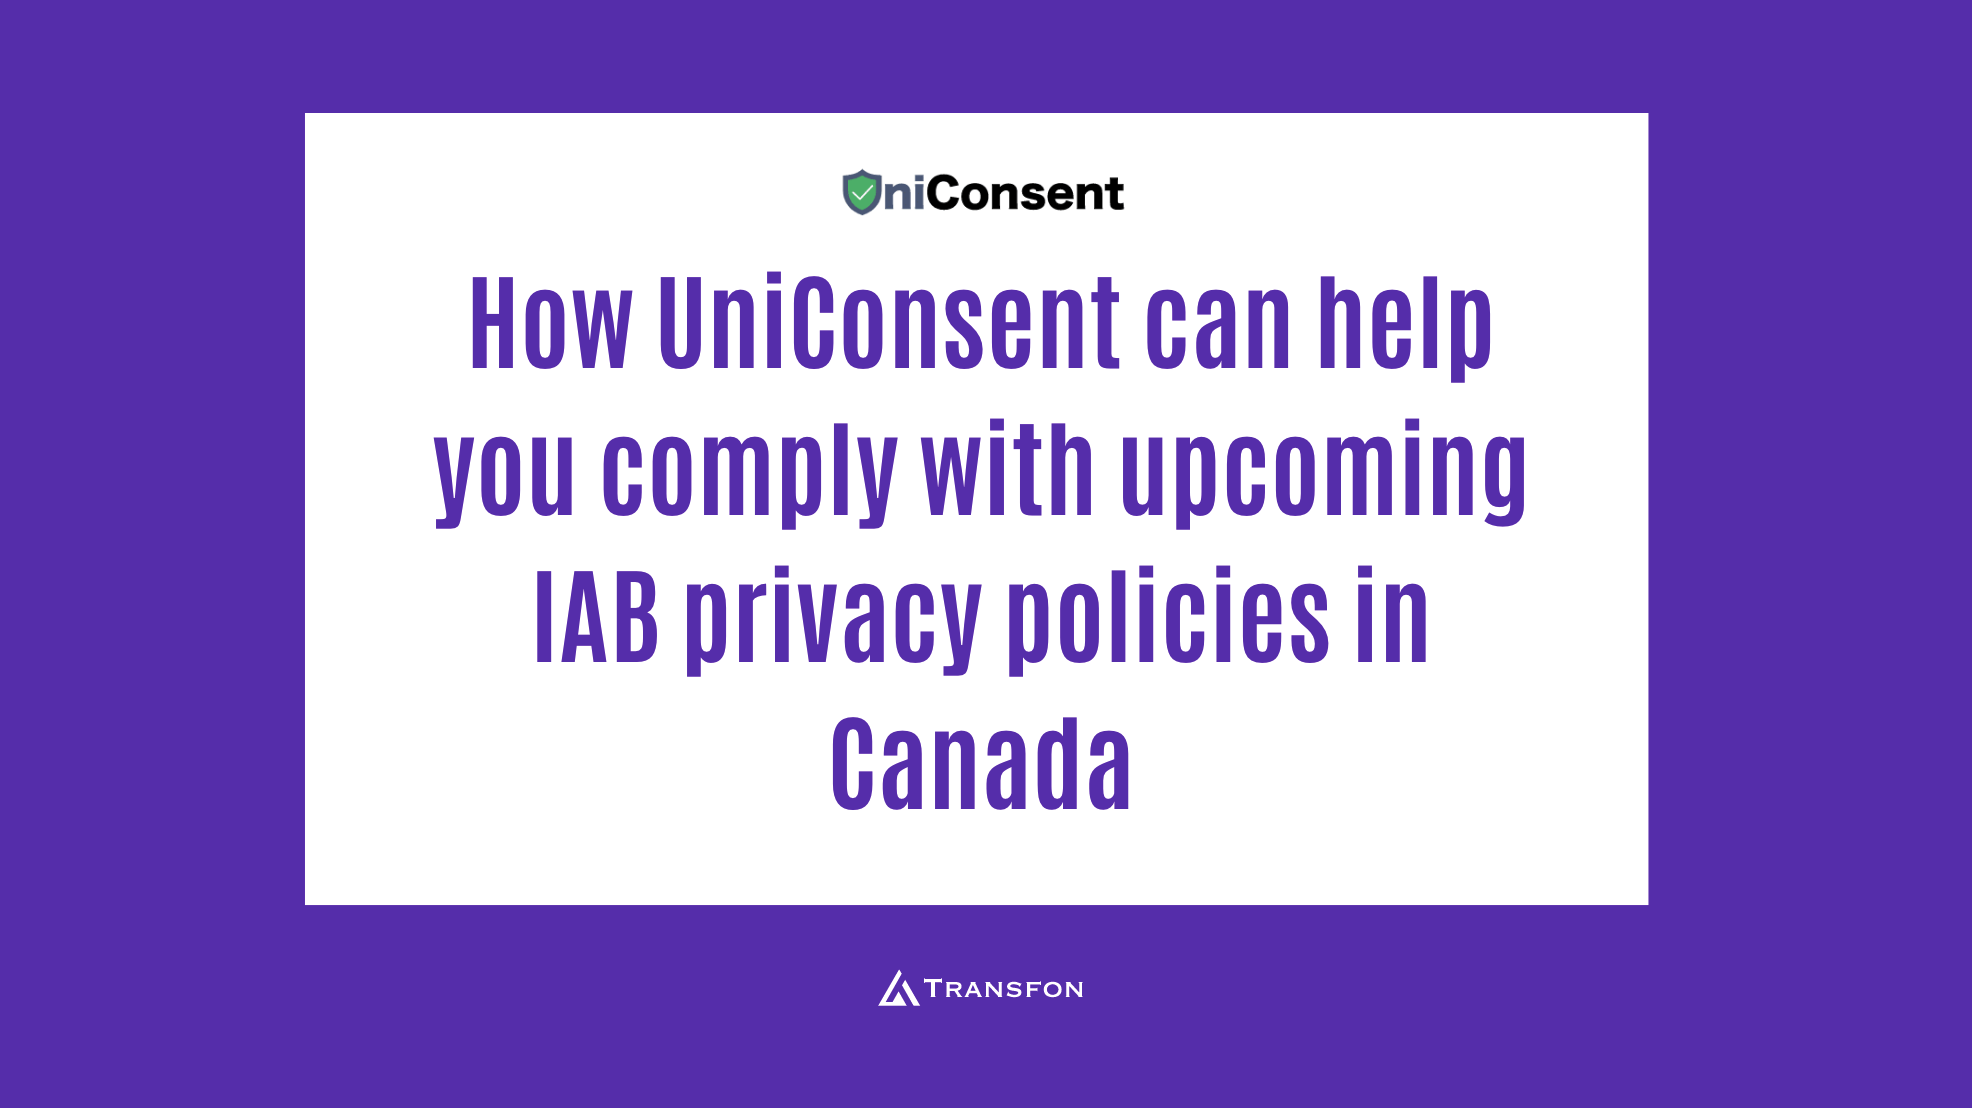 How UniConsent can help you comply with upcoming IAB privacy policies in Canada